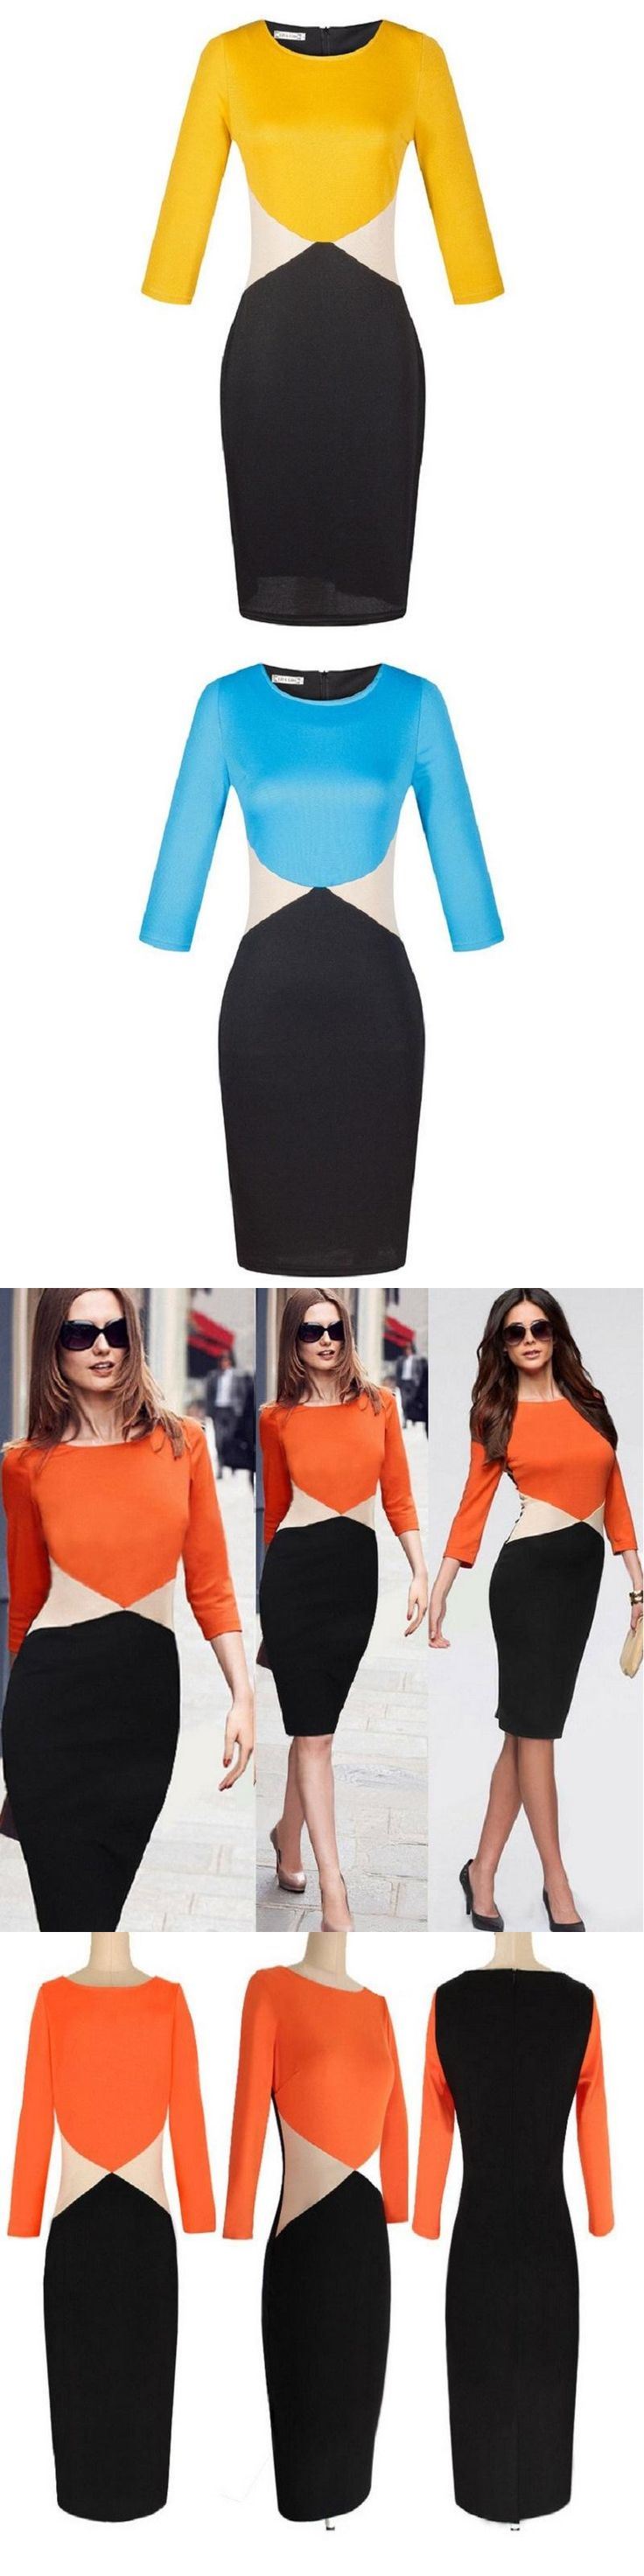 Brand New 2016 Summer Dress High Quality Casual Women Dress Palace Office Dress Plus Size Bodycon Dress For Ropa Mujer Vestidos